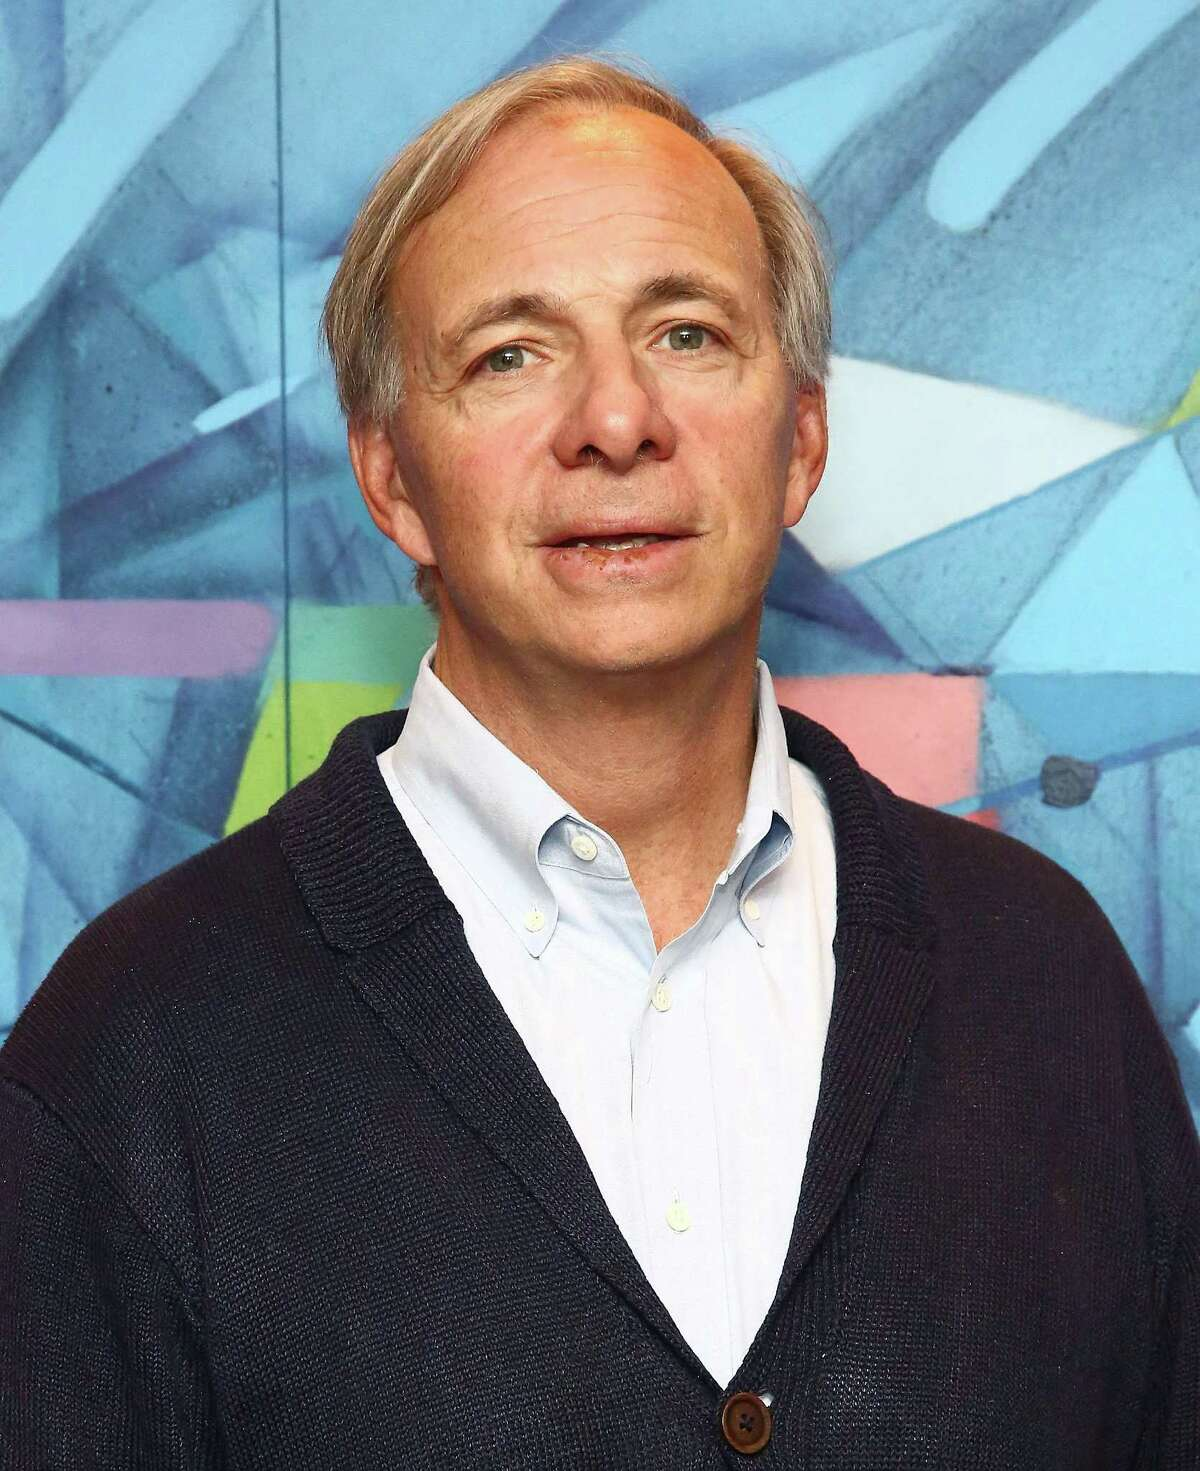 Ray Dalio - Greenwich Rank: 57 out of 2,150 | Net worth: $18.4B | Industry: Hedge funds Source: Forbes